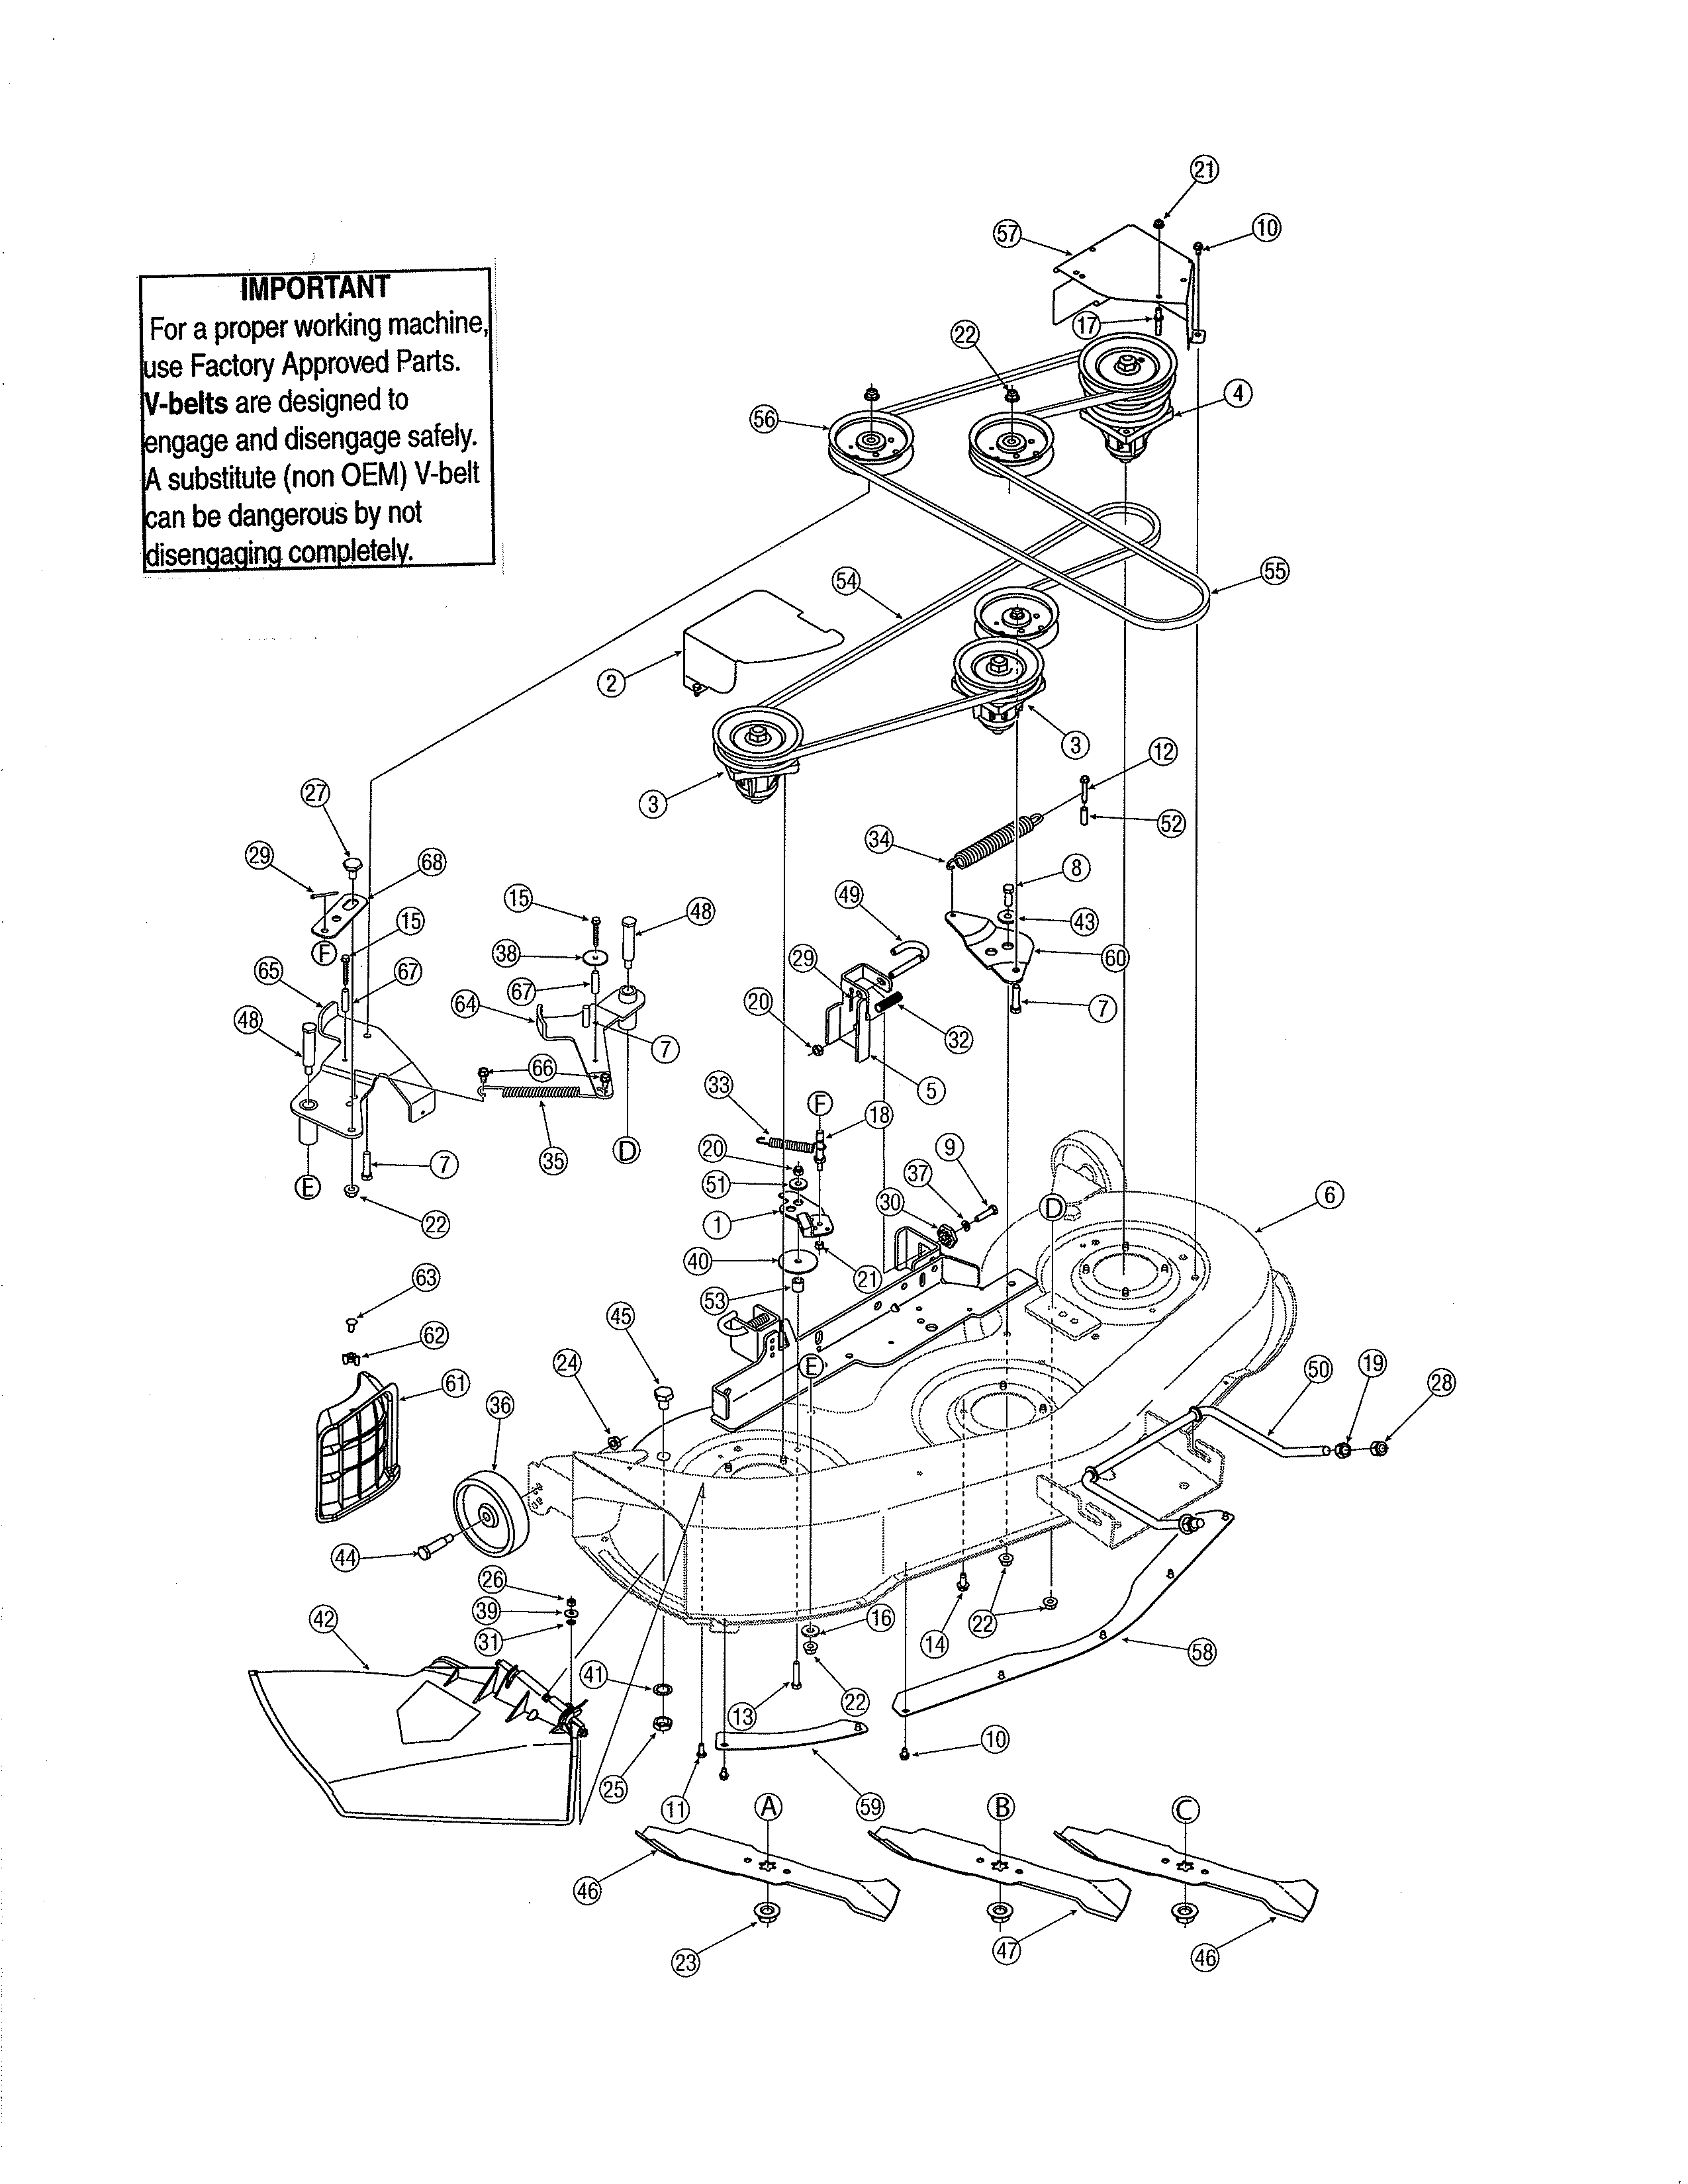 46 deck manual pto diagram parts list for model 13ap605h755 yardman parts riding mower tractor parts searspartsdirect [ 2550 x 3300 Pixel ]